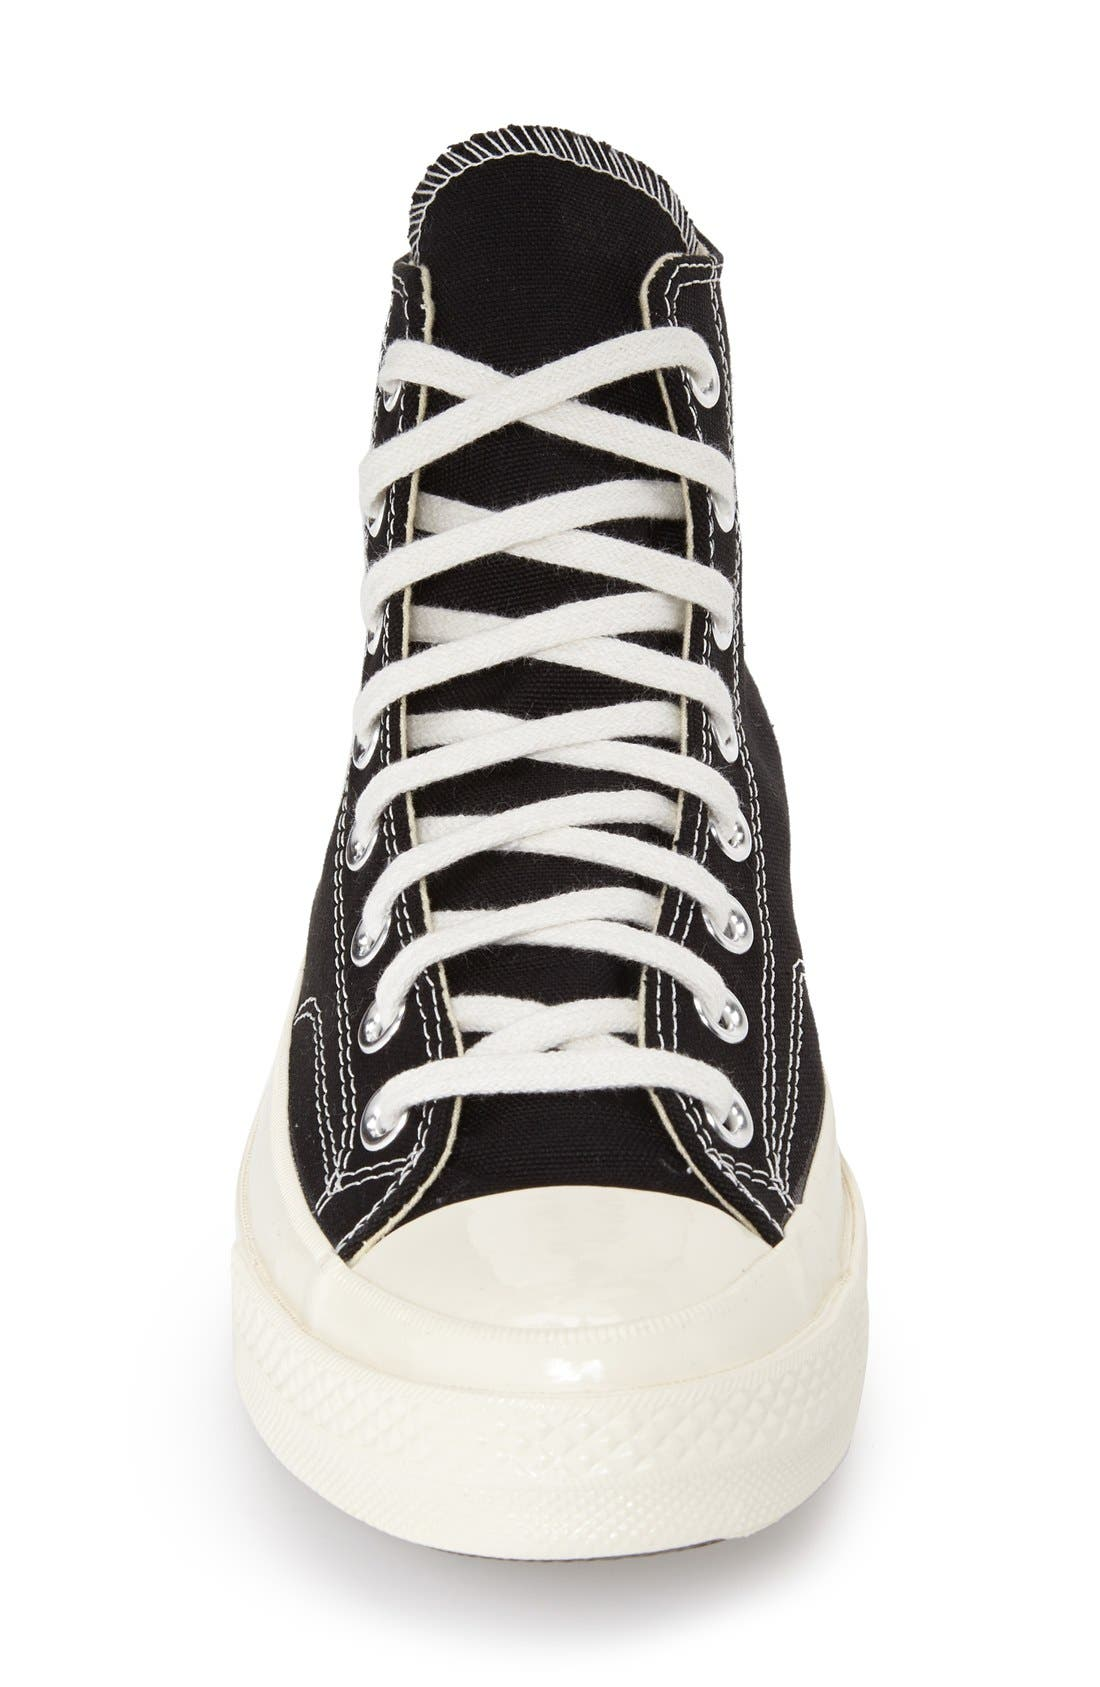 Comme des Garçons PLAY x Converse Chuck Taylor<sup>®</sup> - Hidden Heart High Top Sneaker,                             Alternate thumbnail 3, color,                             Black Canvas